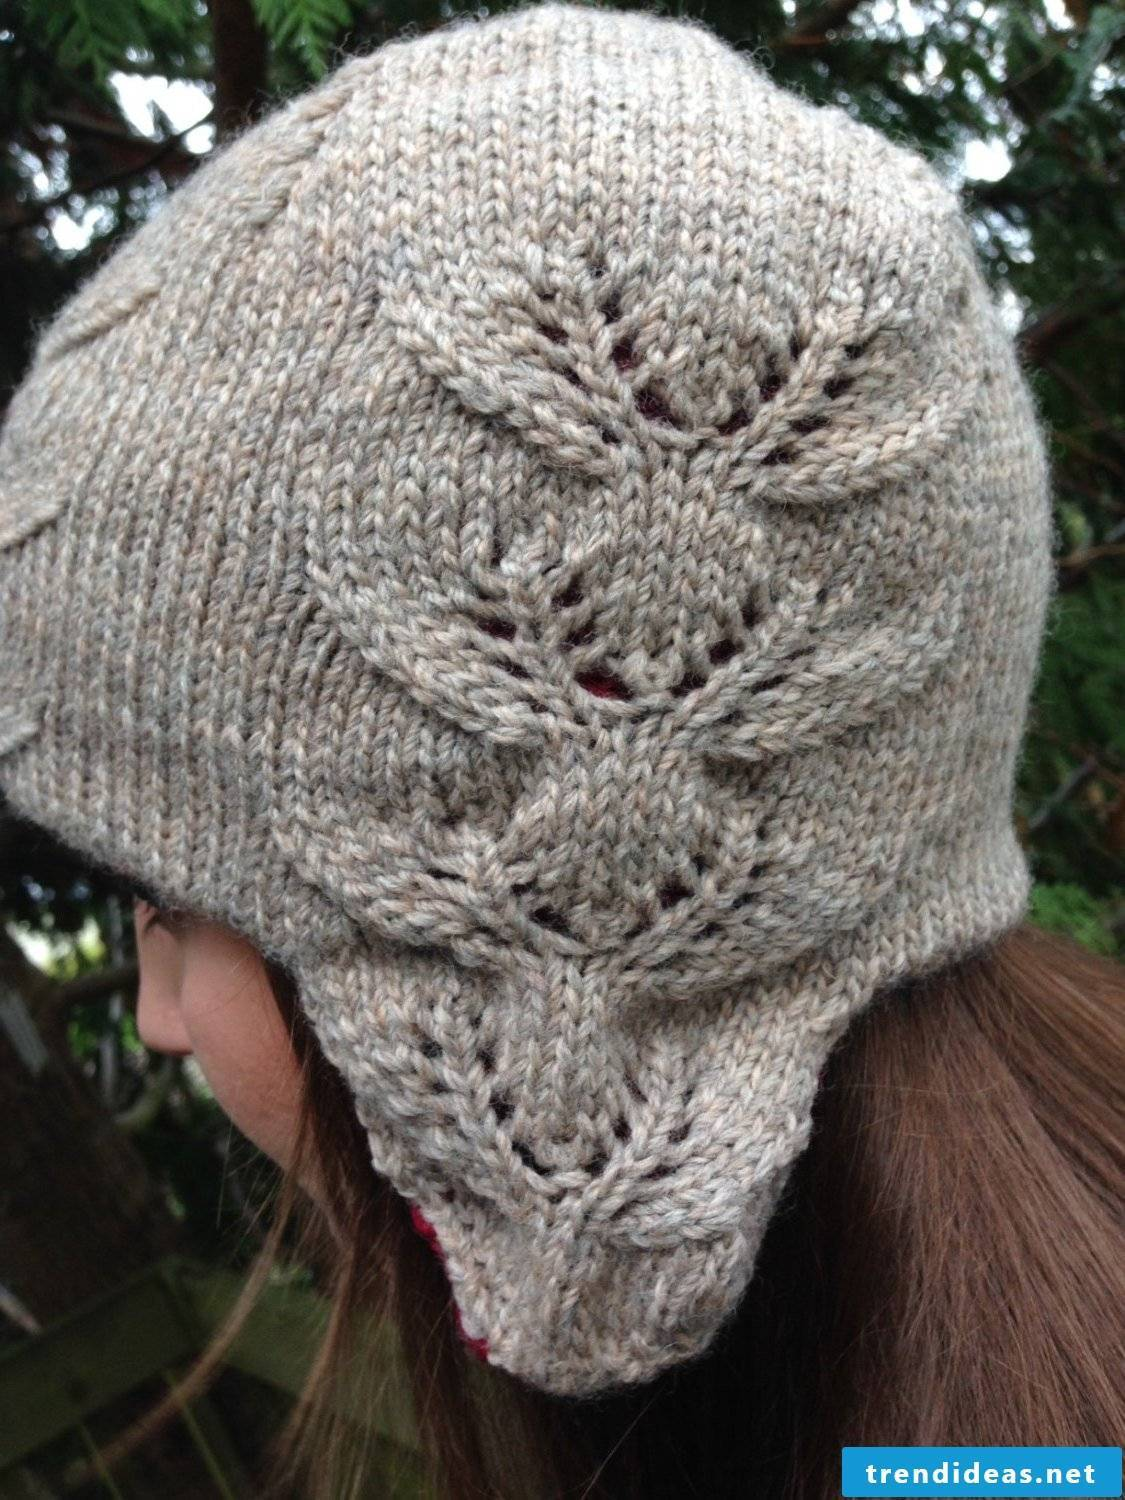 Crochet a great hat in gray